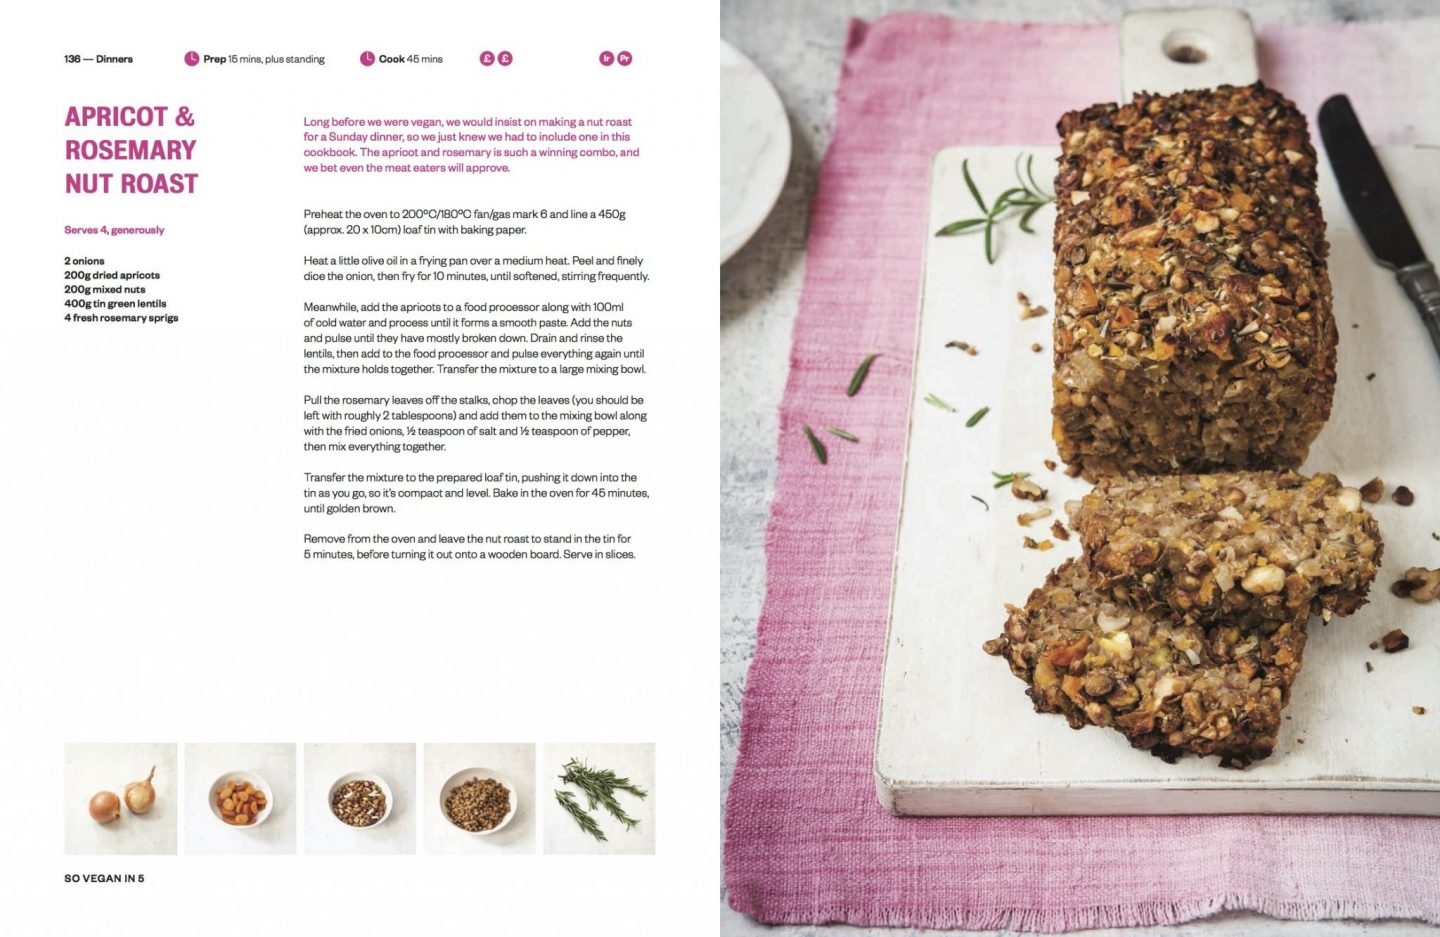 , Five Recipes Using 5 Ingredients /  So Vegan in 5:  Recipe Book Review and Giveaway